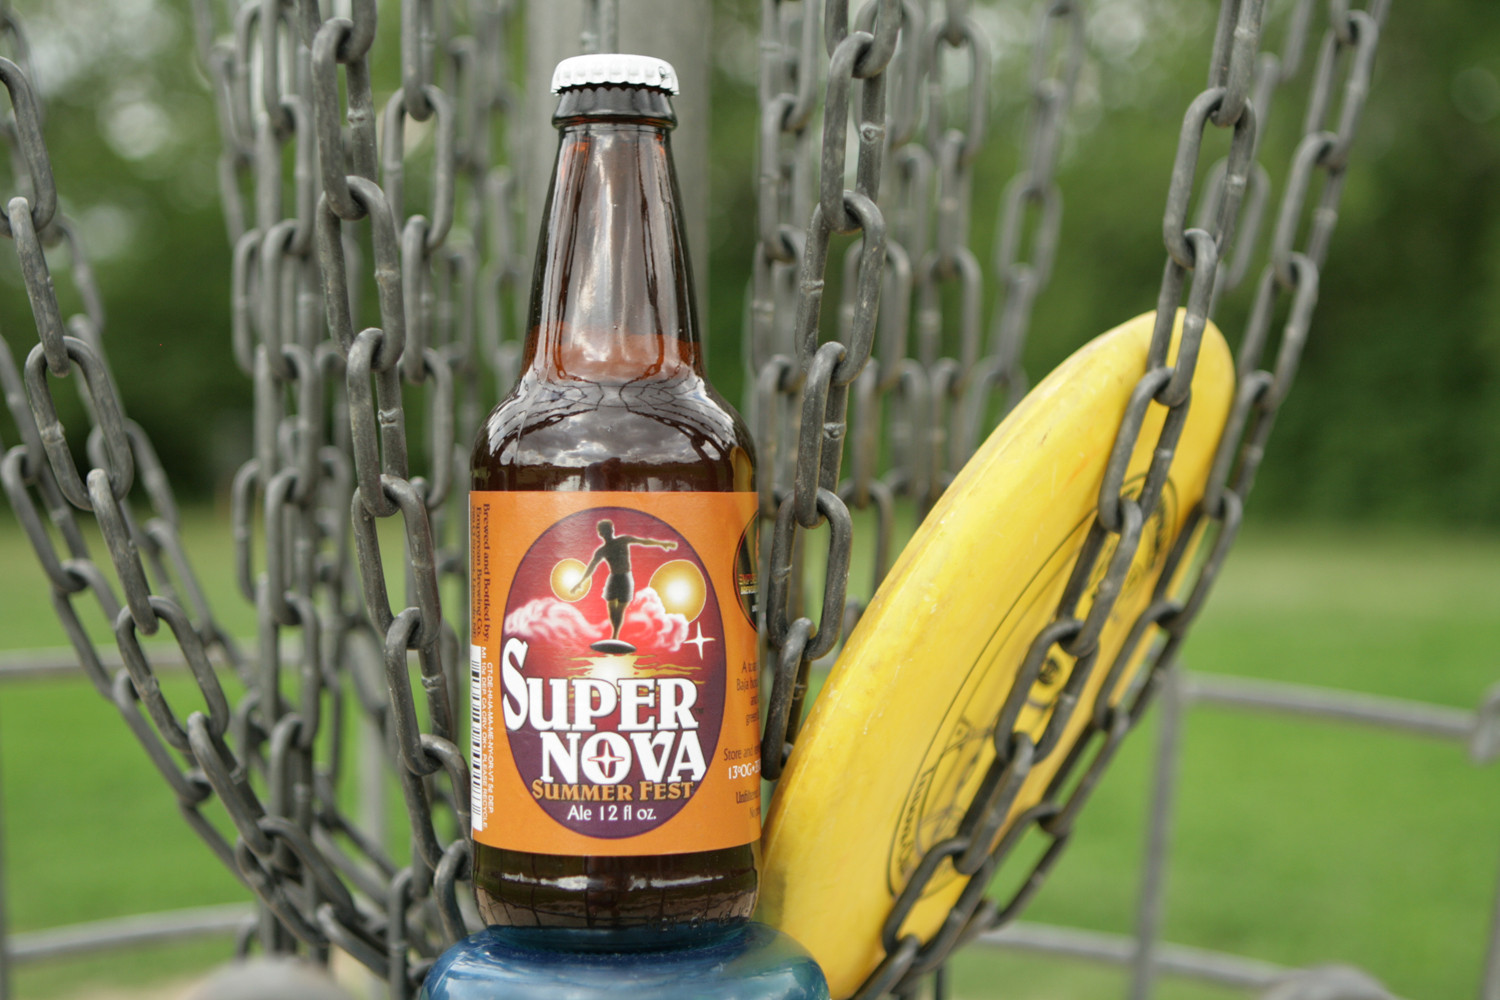 Find Super Nova summer beer on the disc golf course.